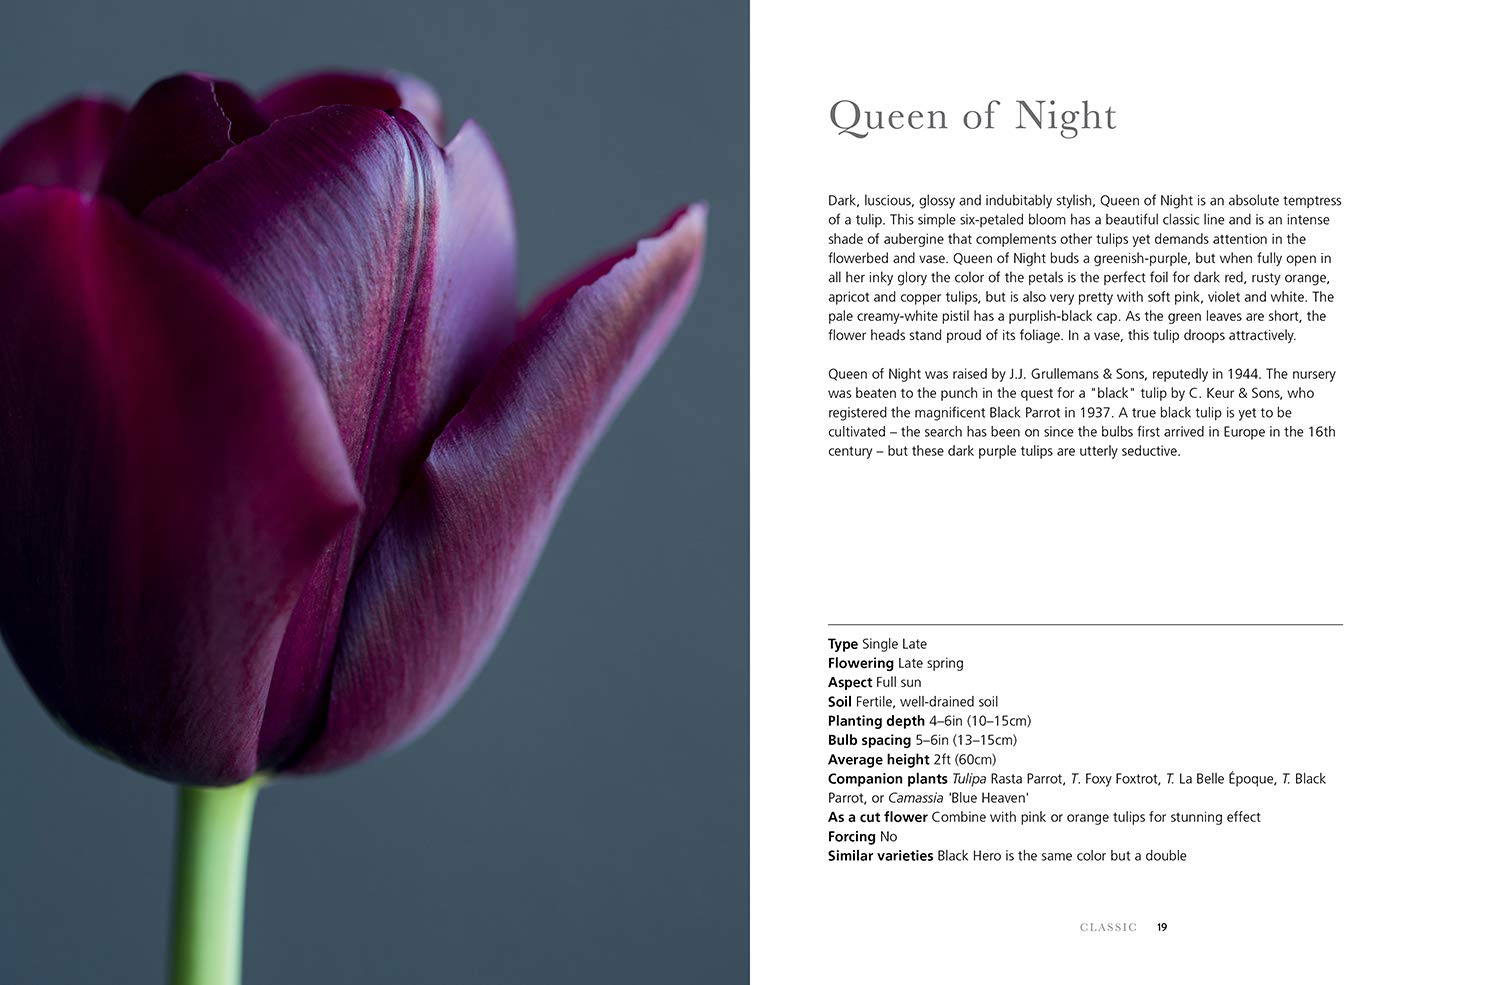 Single Late 20 Viridis Hortus 20 x Queen of Night 30 /& 40 Tulip Bulbs We ONLY Ship This Item with-in UK Available in Packs 10